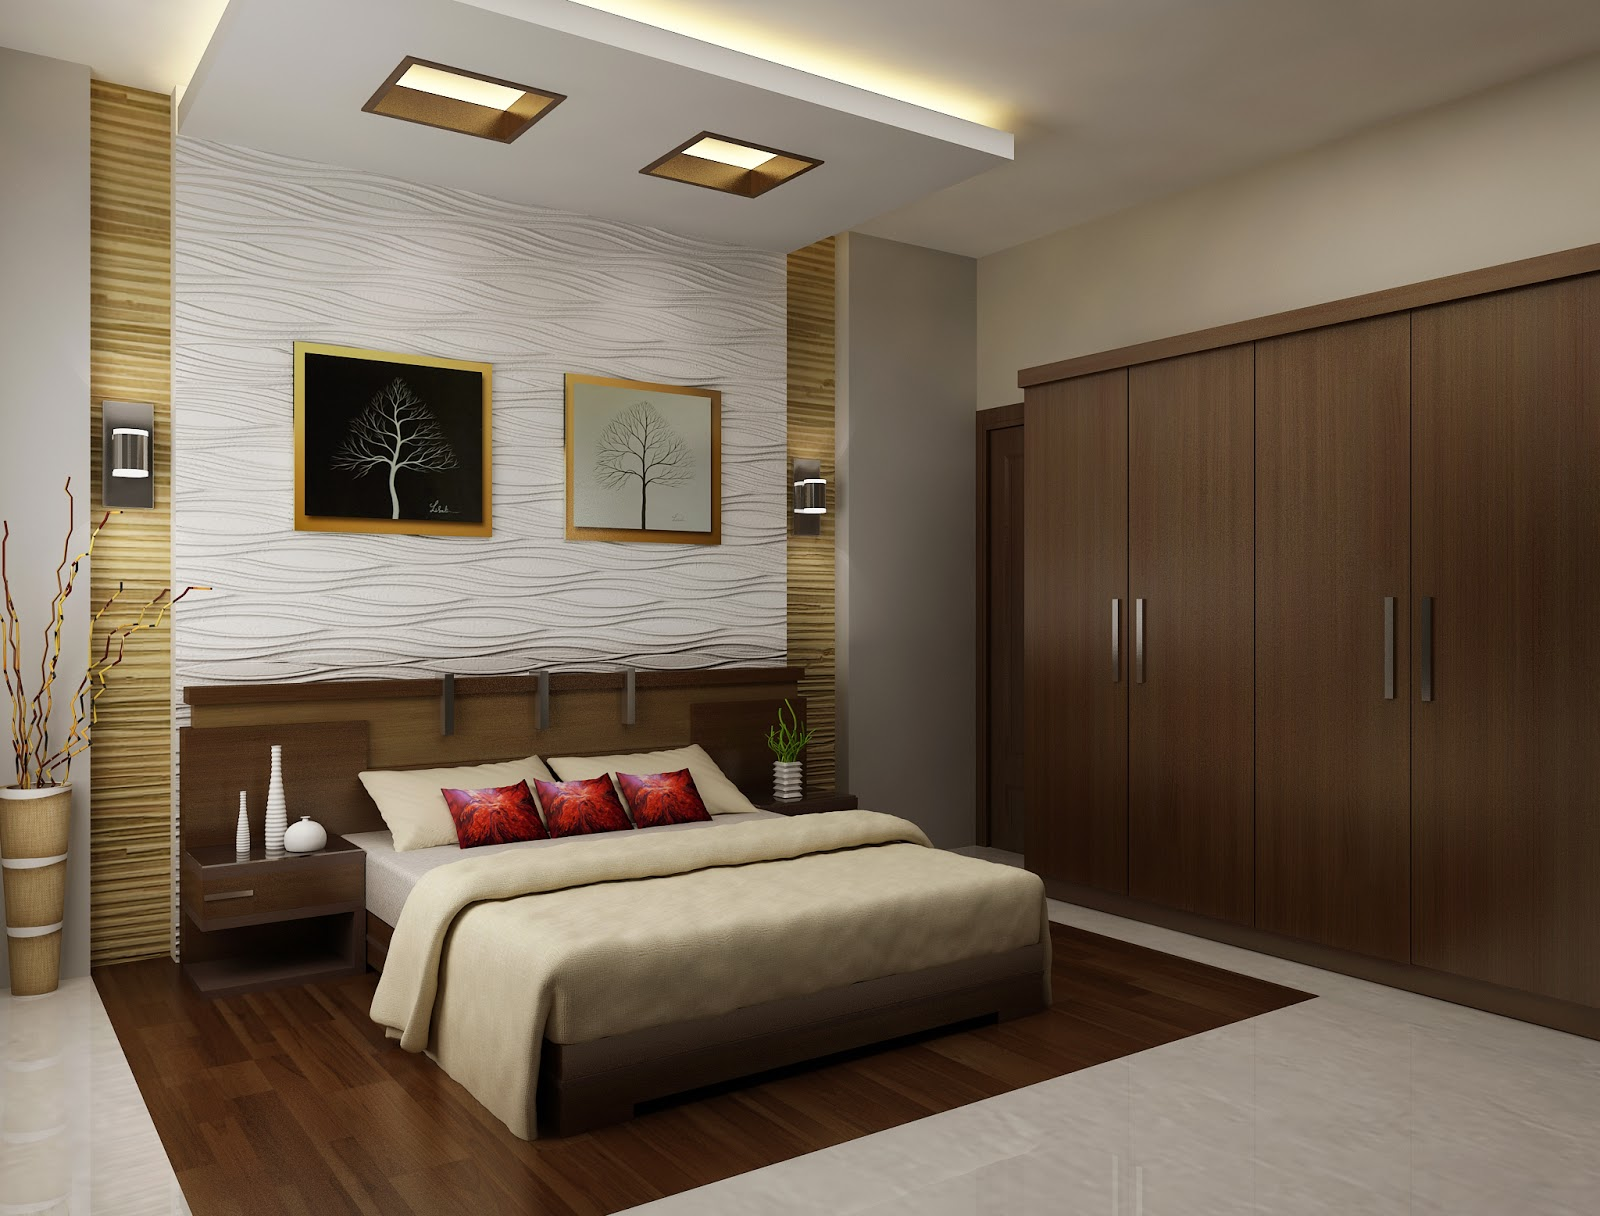 Kerala Interior Design Bedroom - Living Room Minimalist Modern on kerala home design exterior, kerala house interior design, kerala model house design,